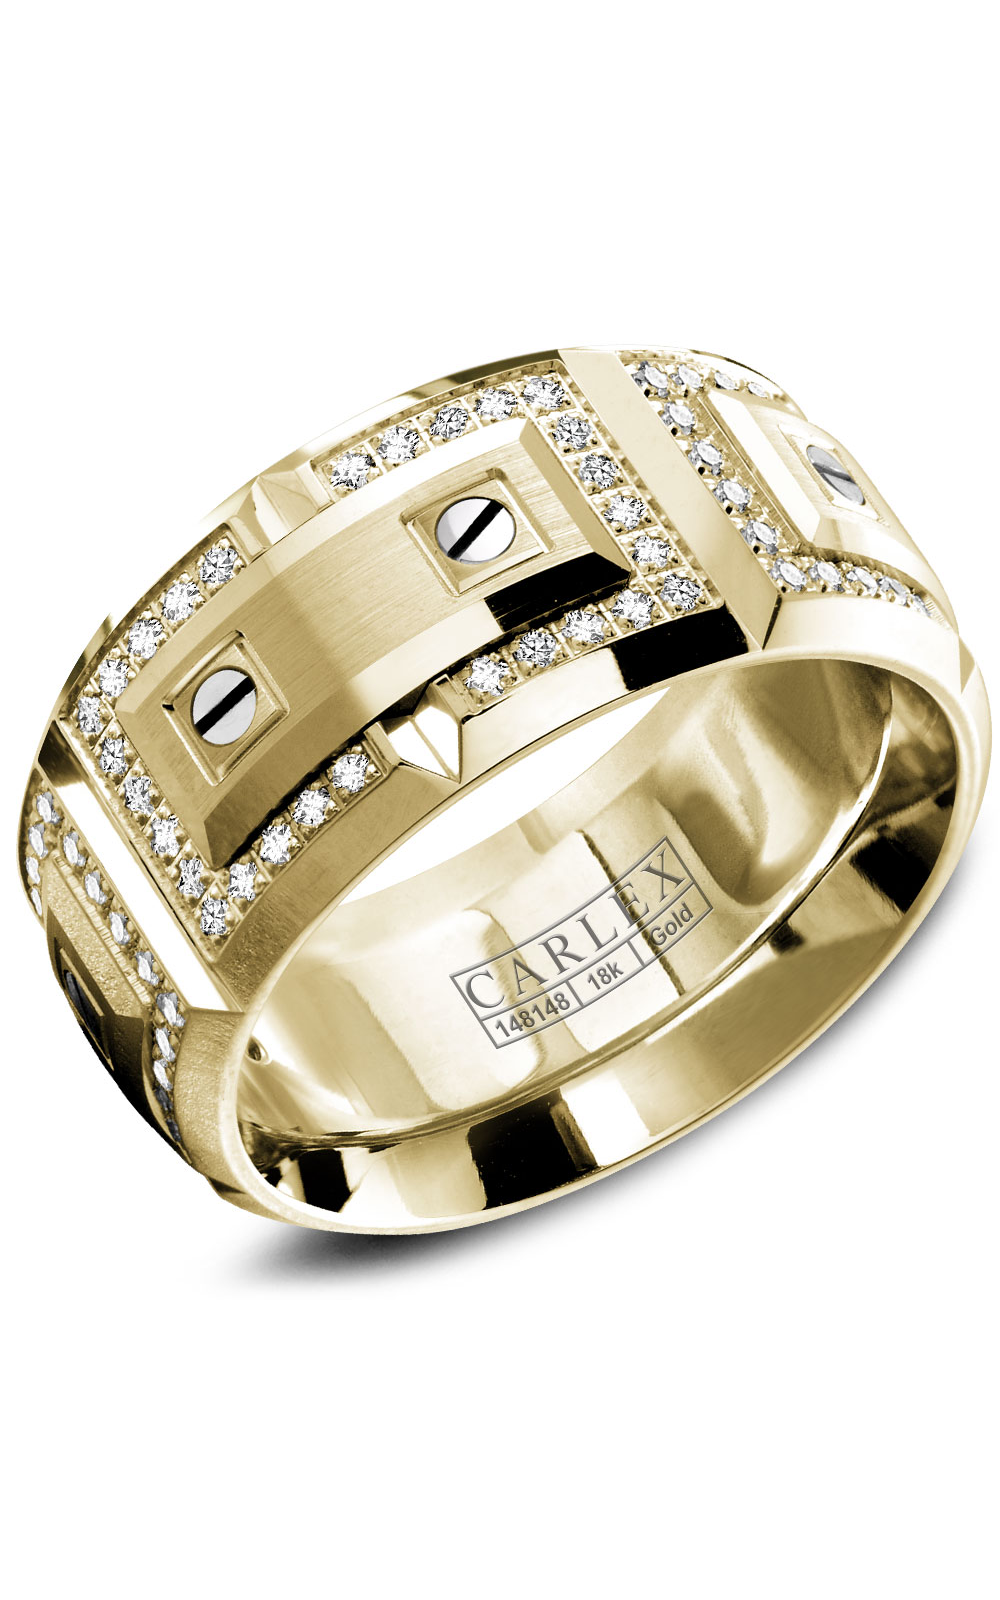 Carlex G2 Men's Wedding Band WB-9851YY product image